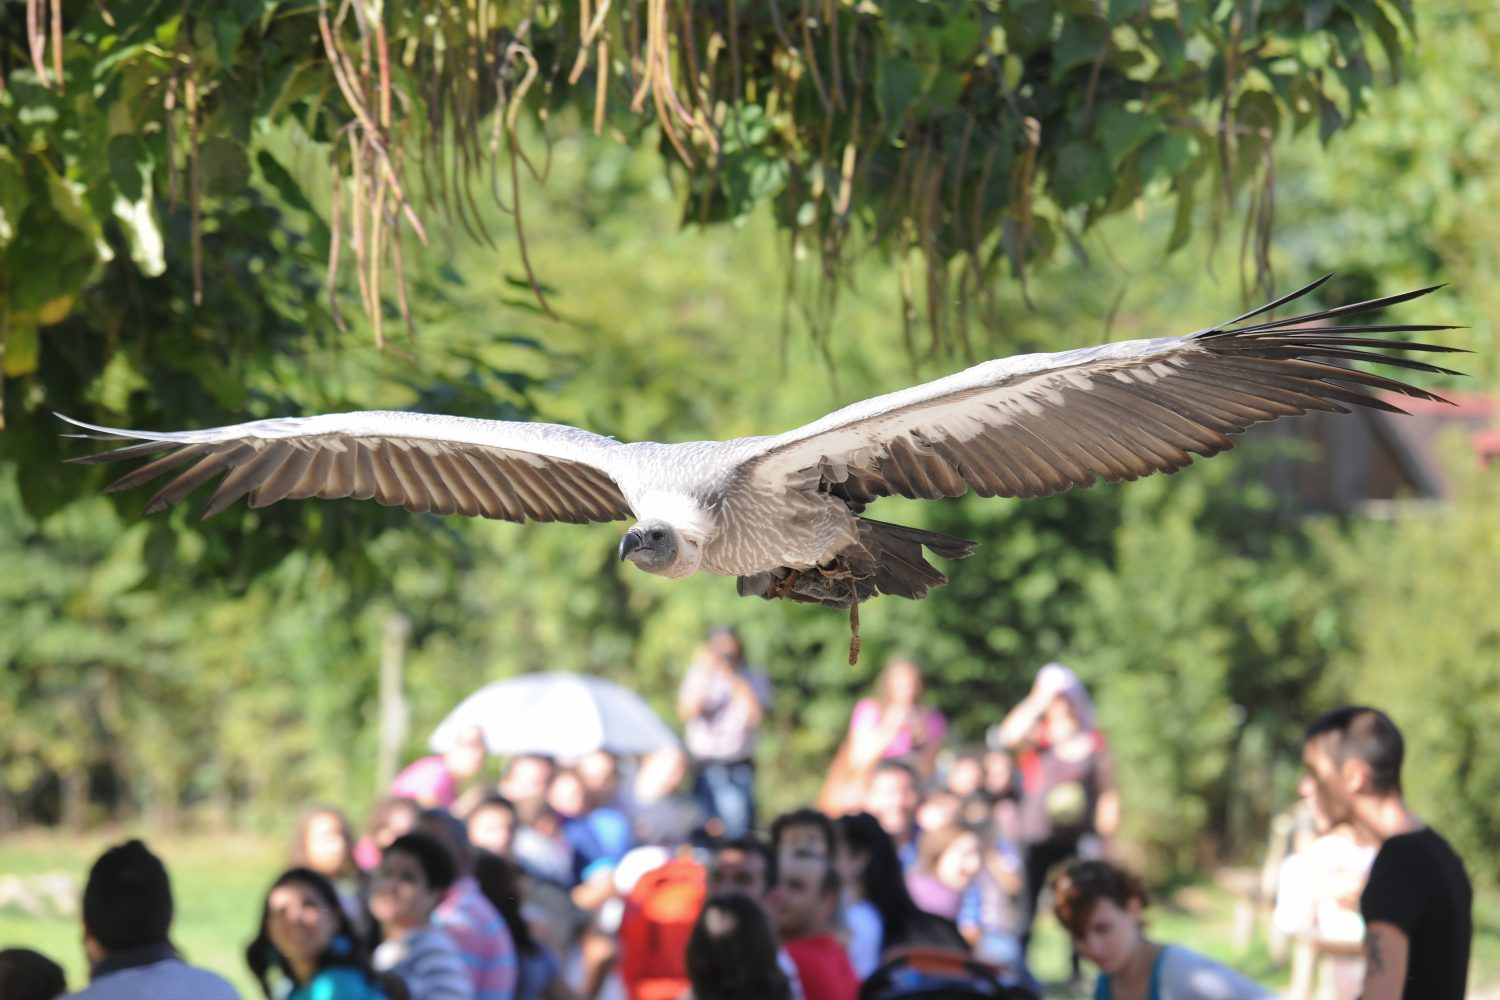 Griffon vulture flying at Zoo santo inacio Porto